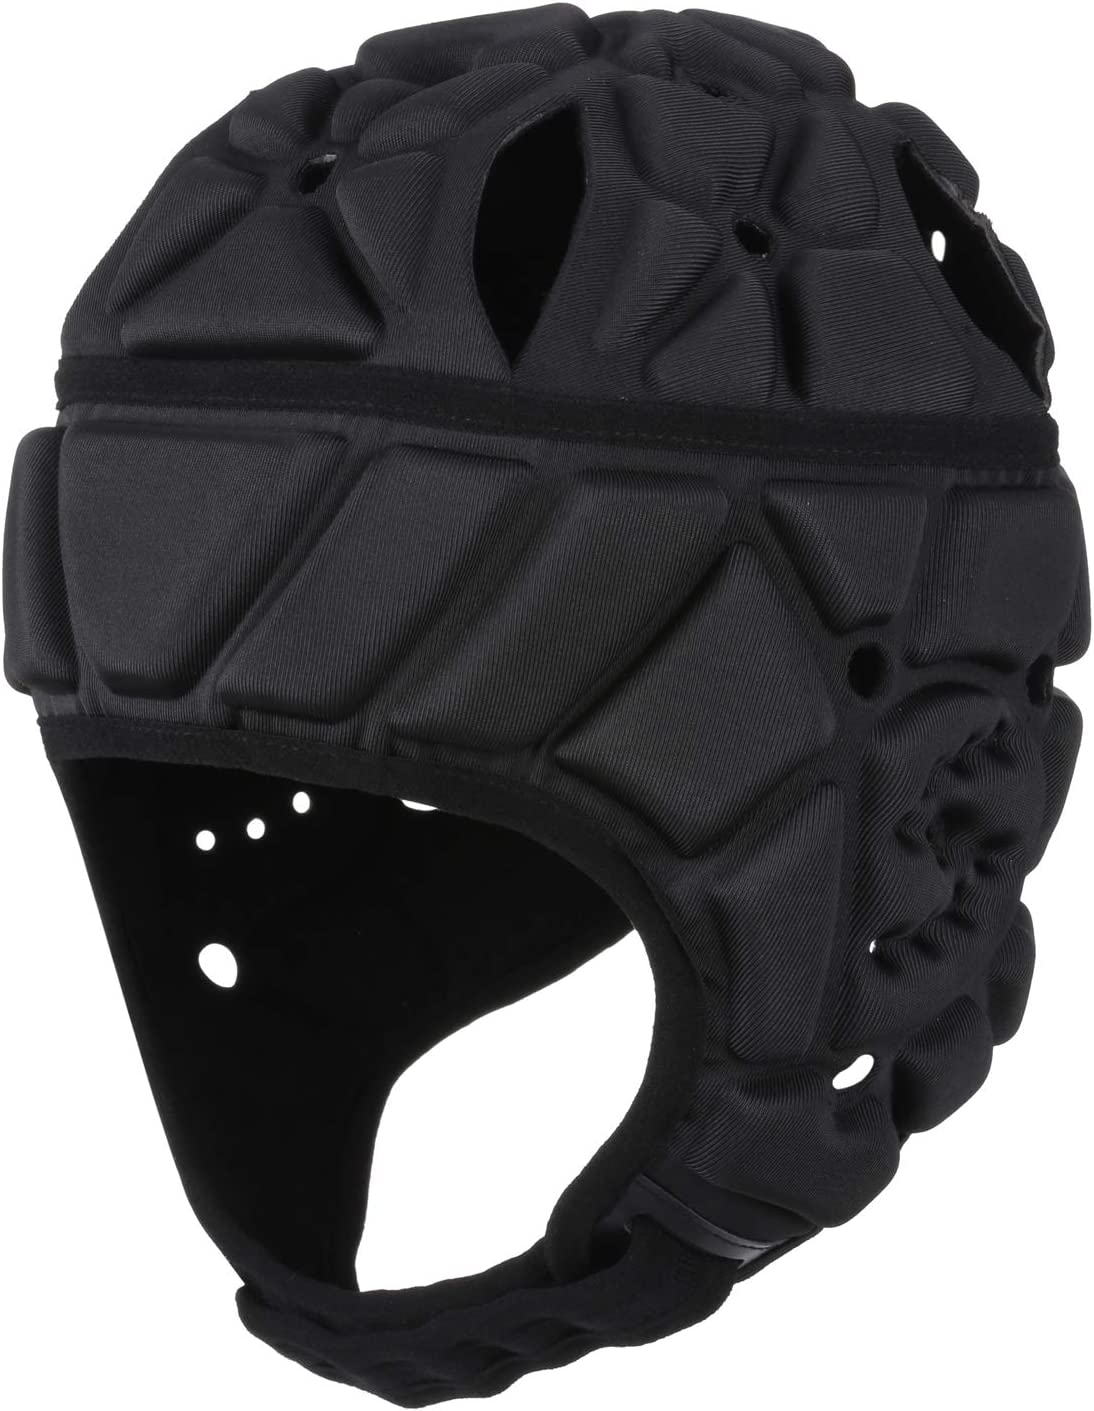 Surlim Soft Helmet Flag Football Rugby Helmet Scrum Cap Soft Shell Helmet Soccer Headgear Special Needs Head Protection for Youth Adults (Black, Large) : Sports & Outdoors